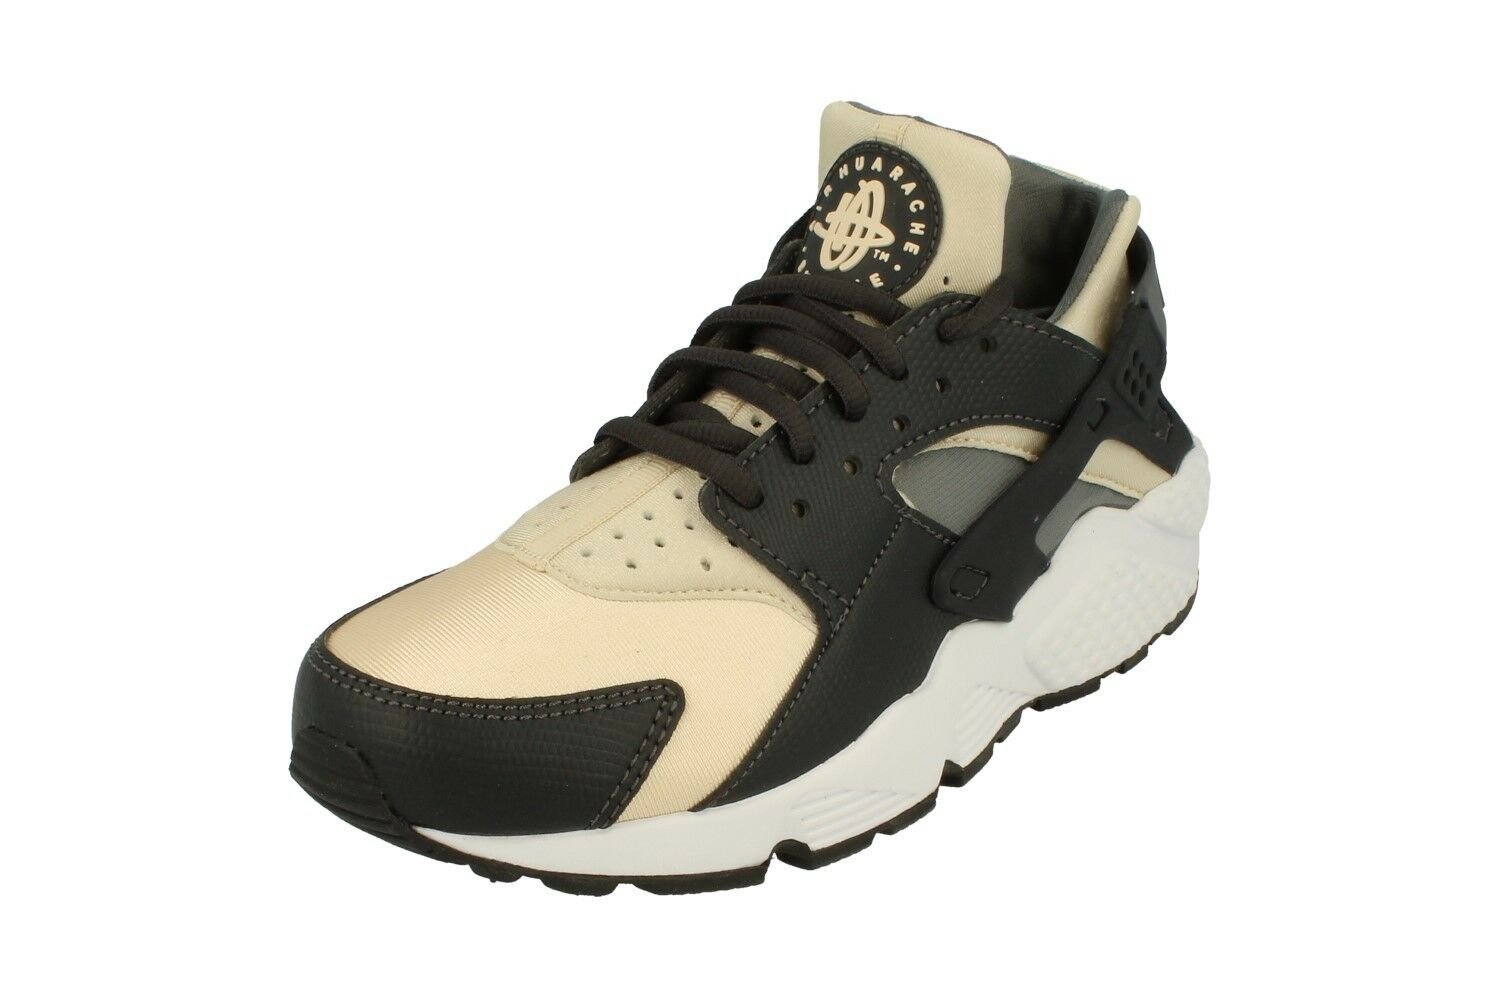 Nike Air Huarache Run Womens Running Trainers 634835 Sneakers Shoes 019 Seasonal clearance sale